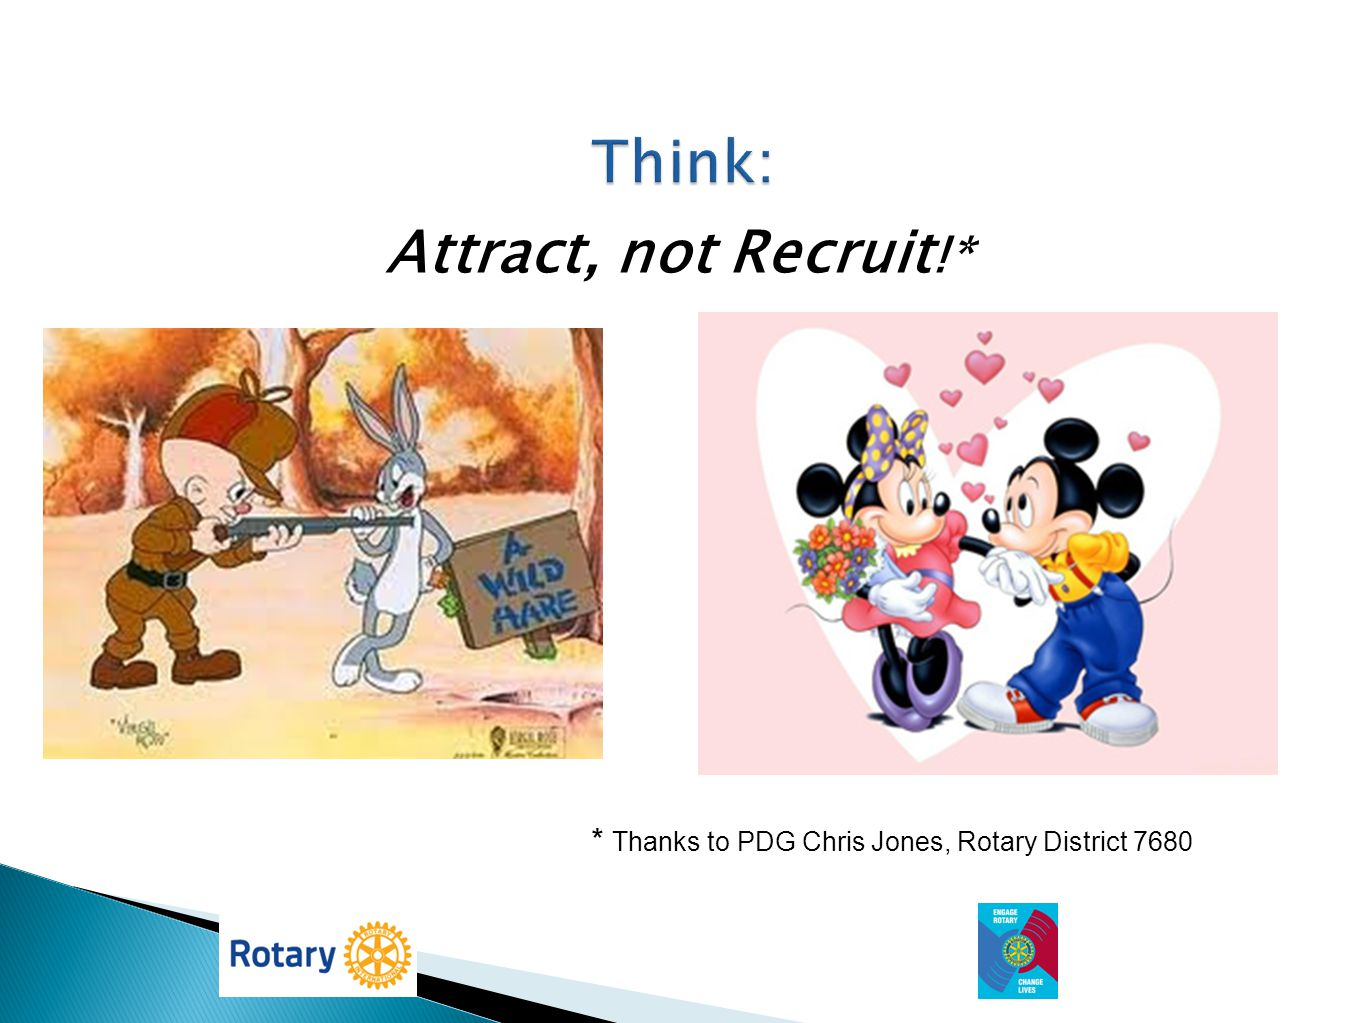 Think: Attract, not Recruit!*